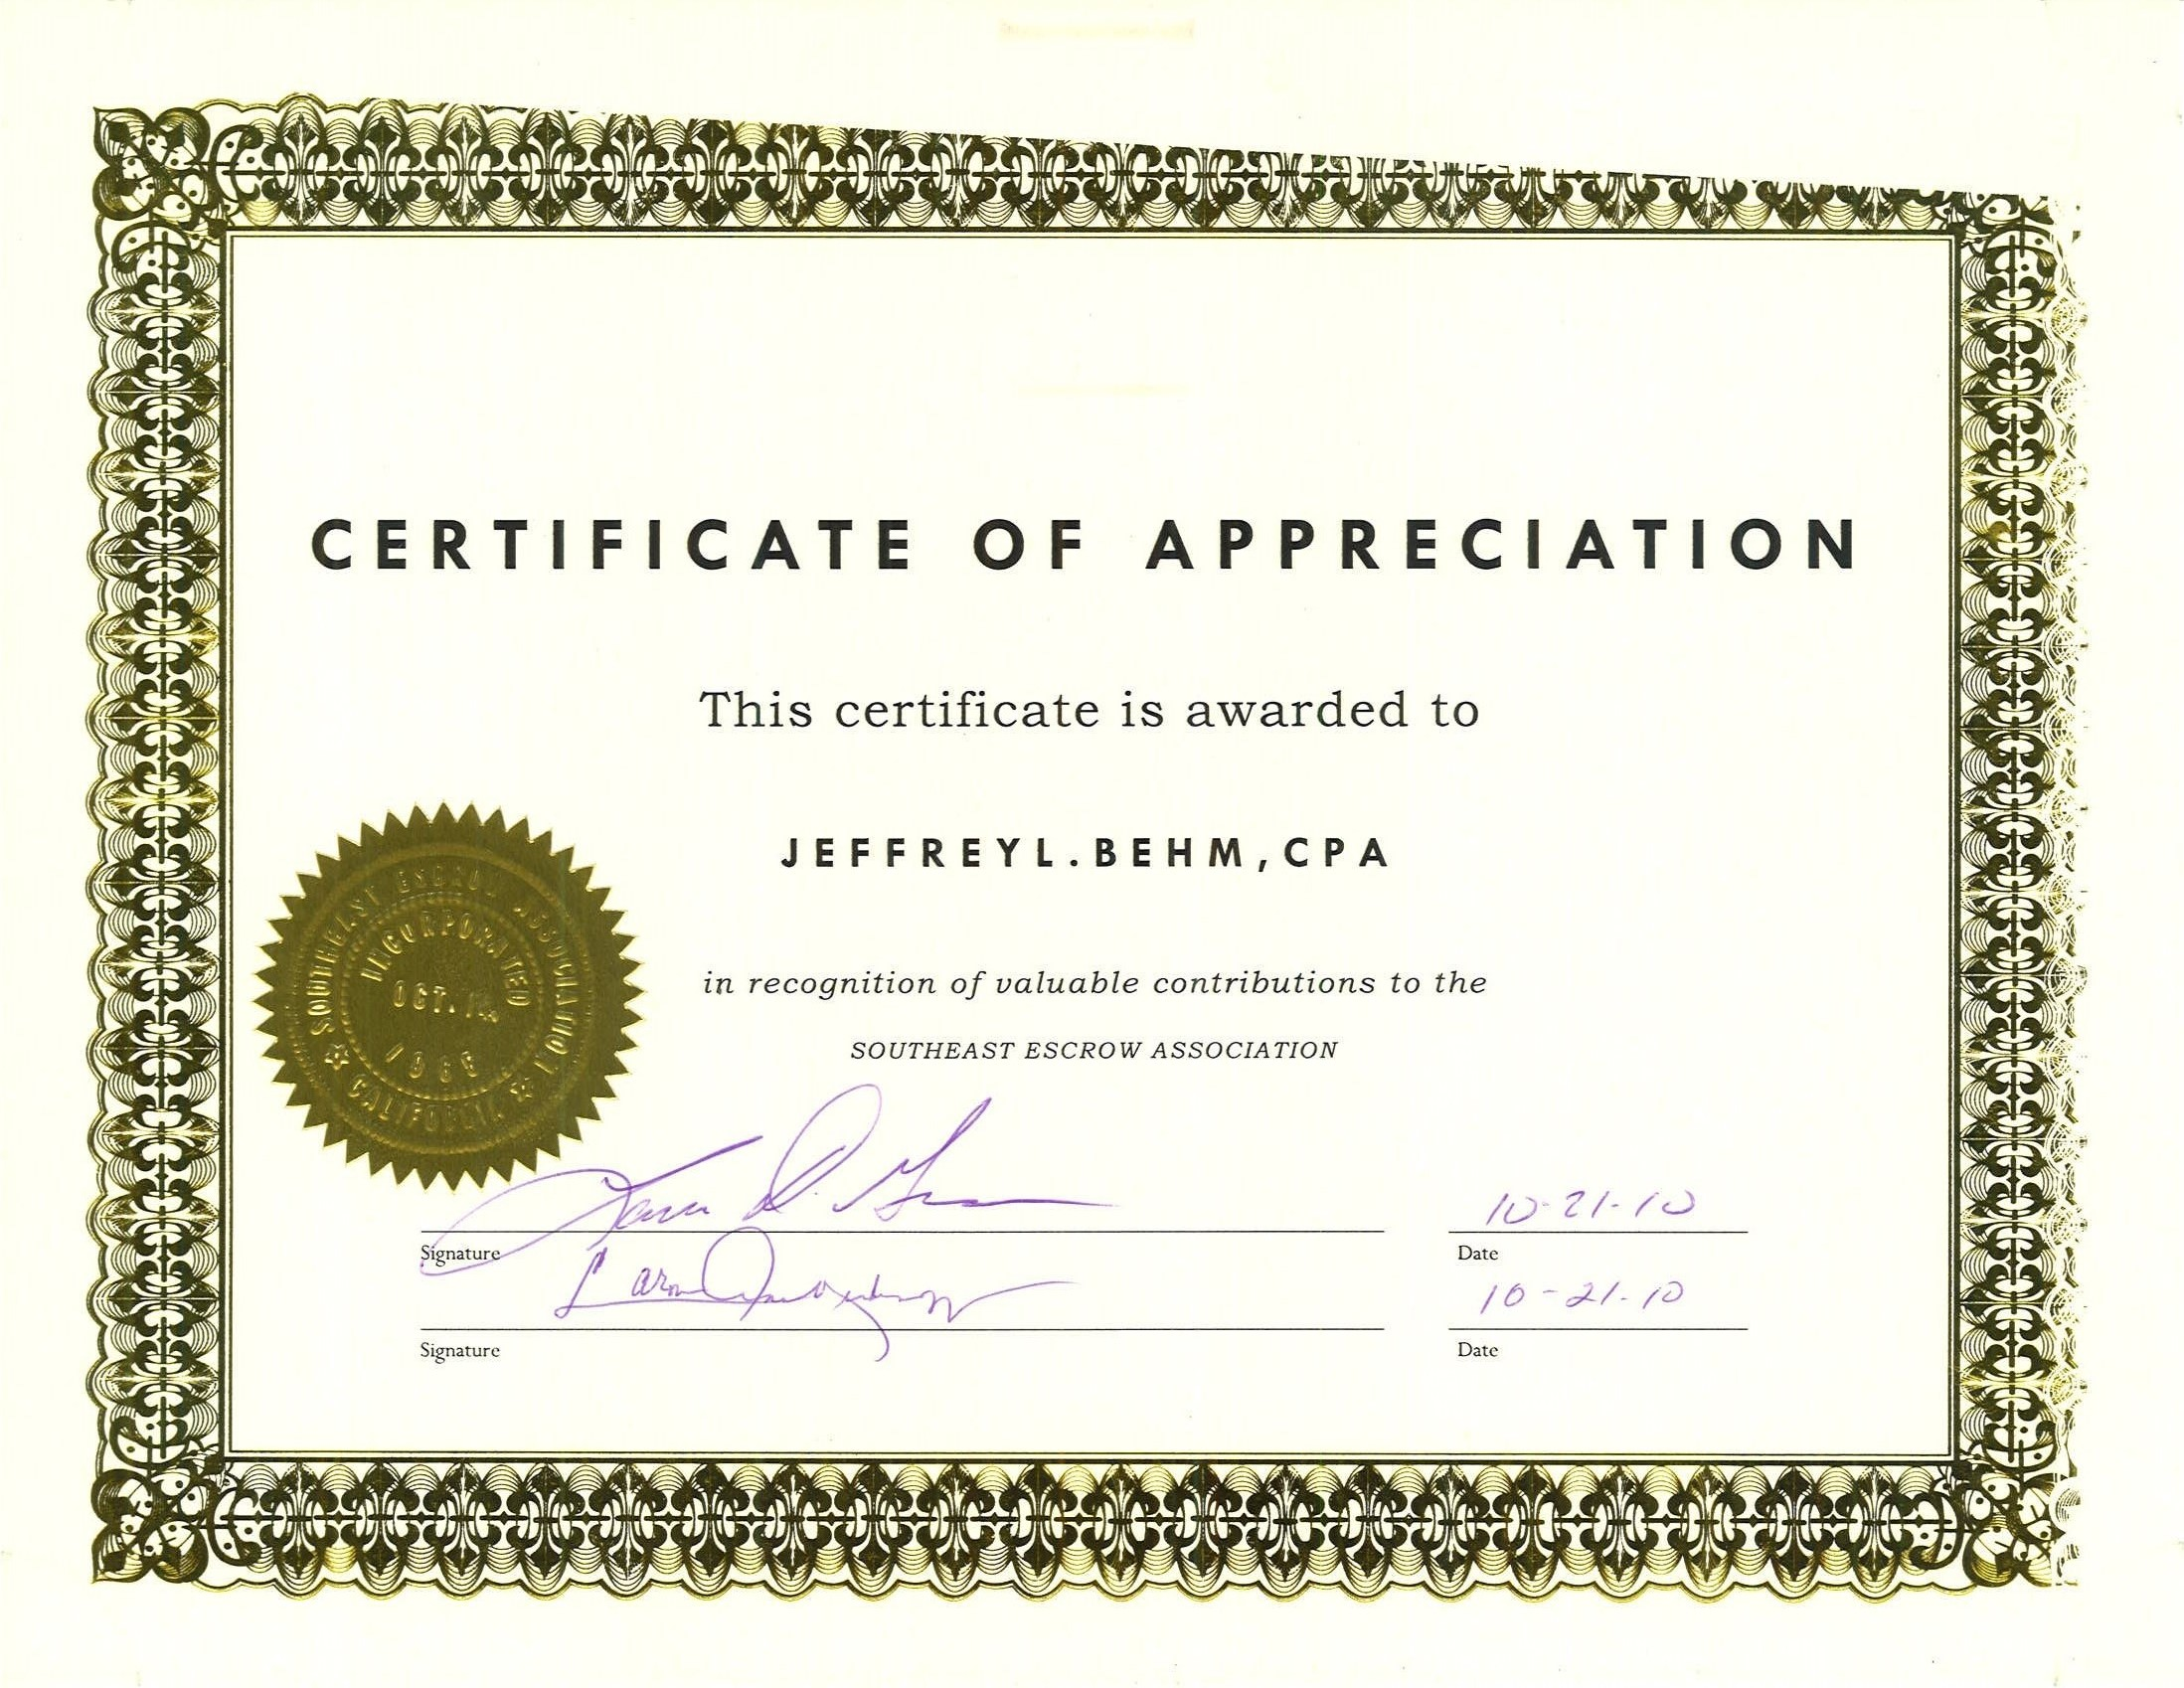 State Certificate of Appreciation